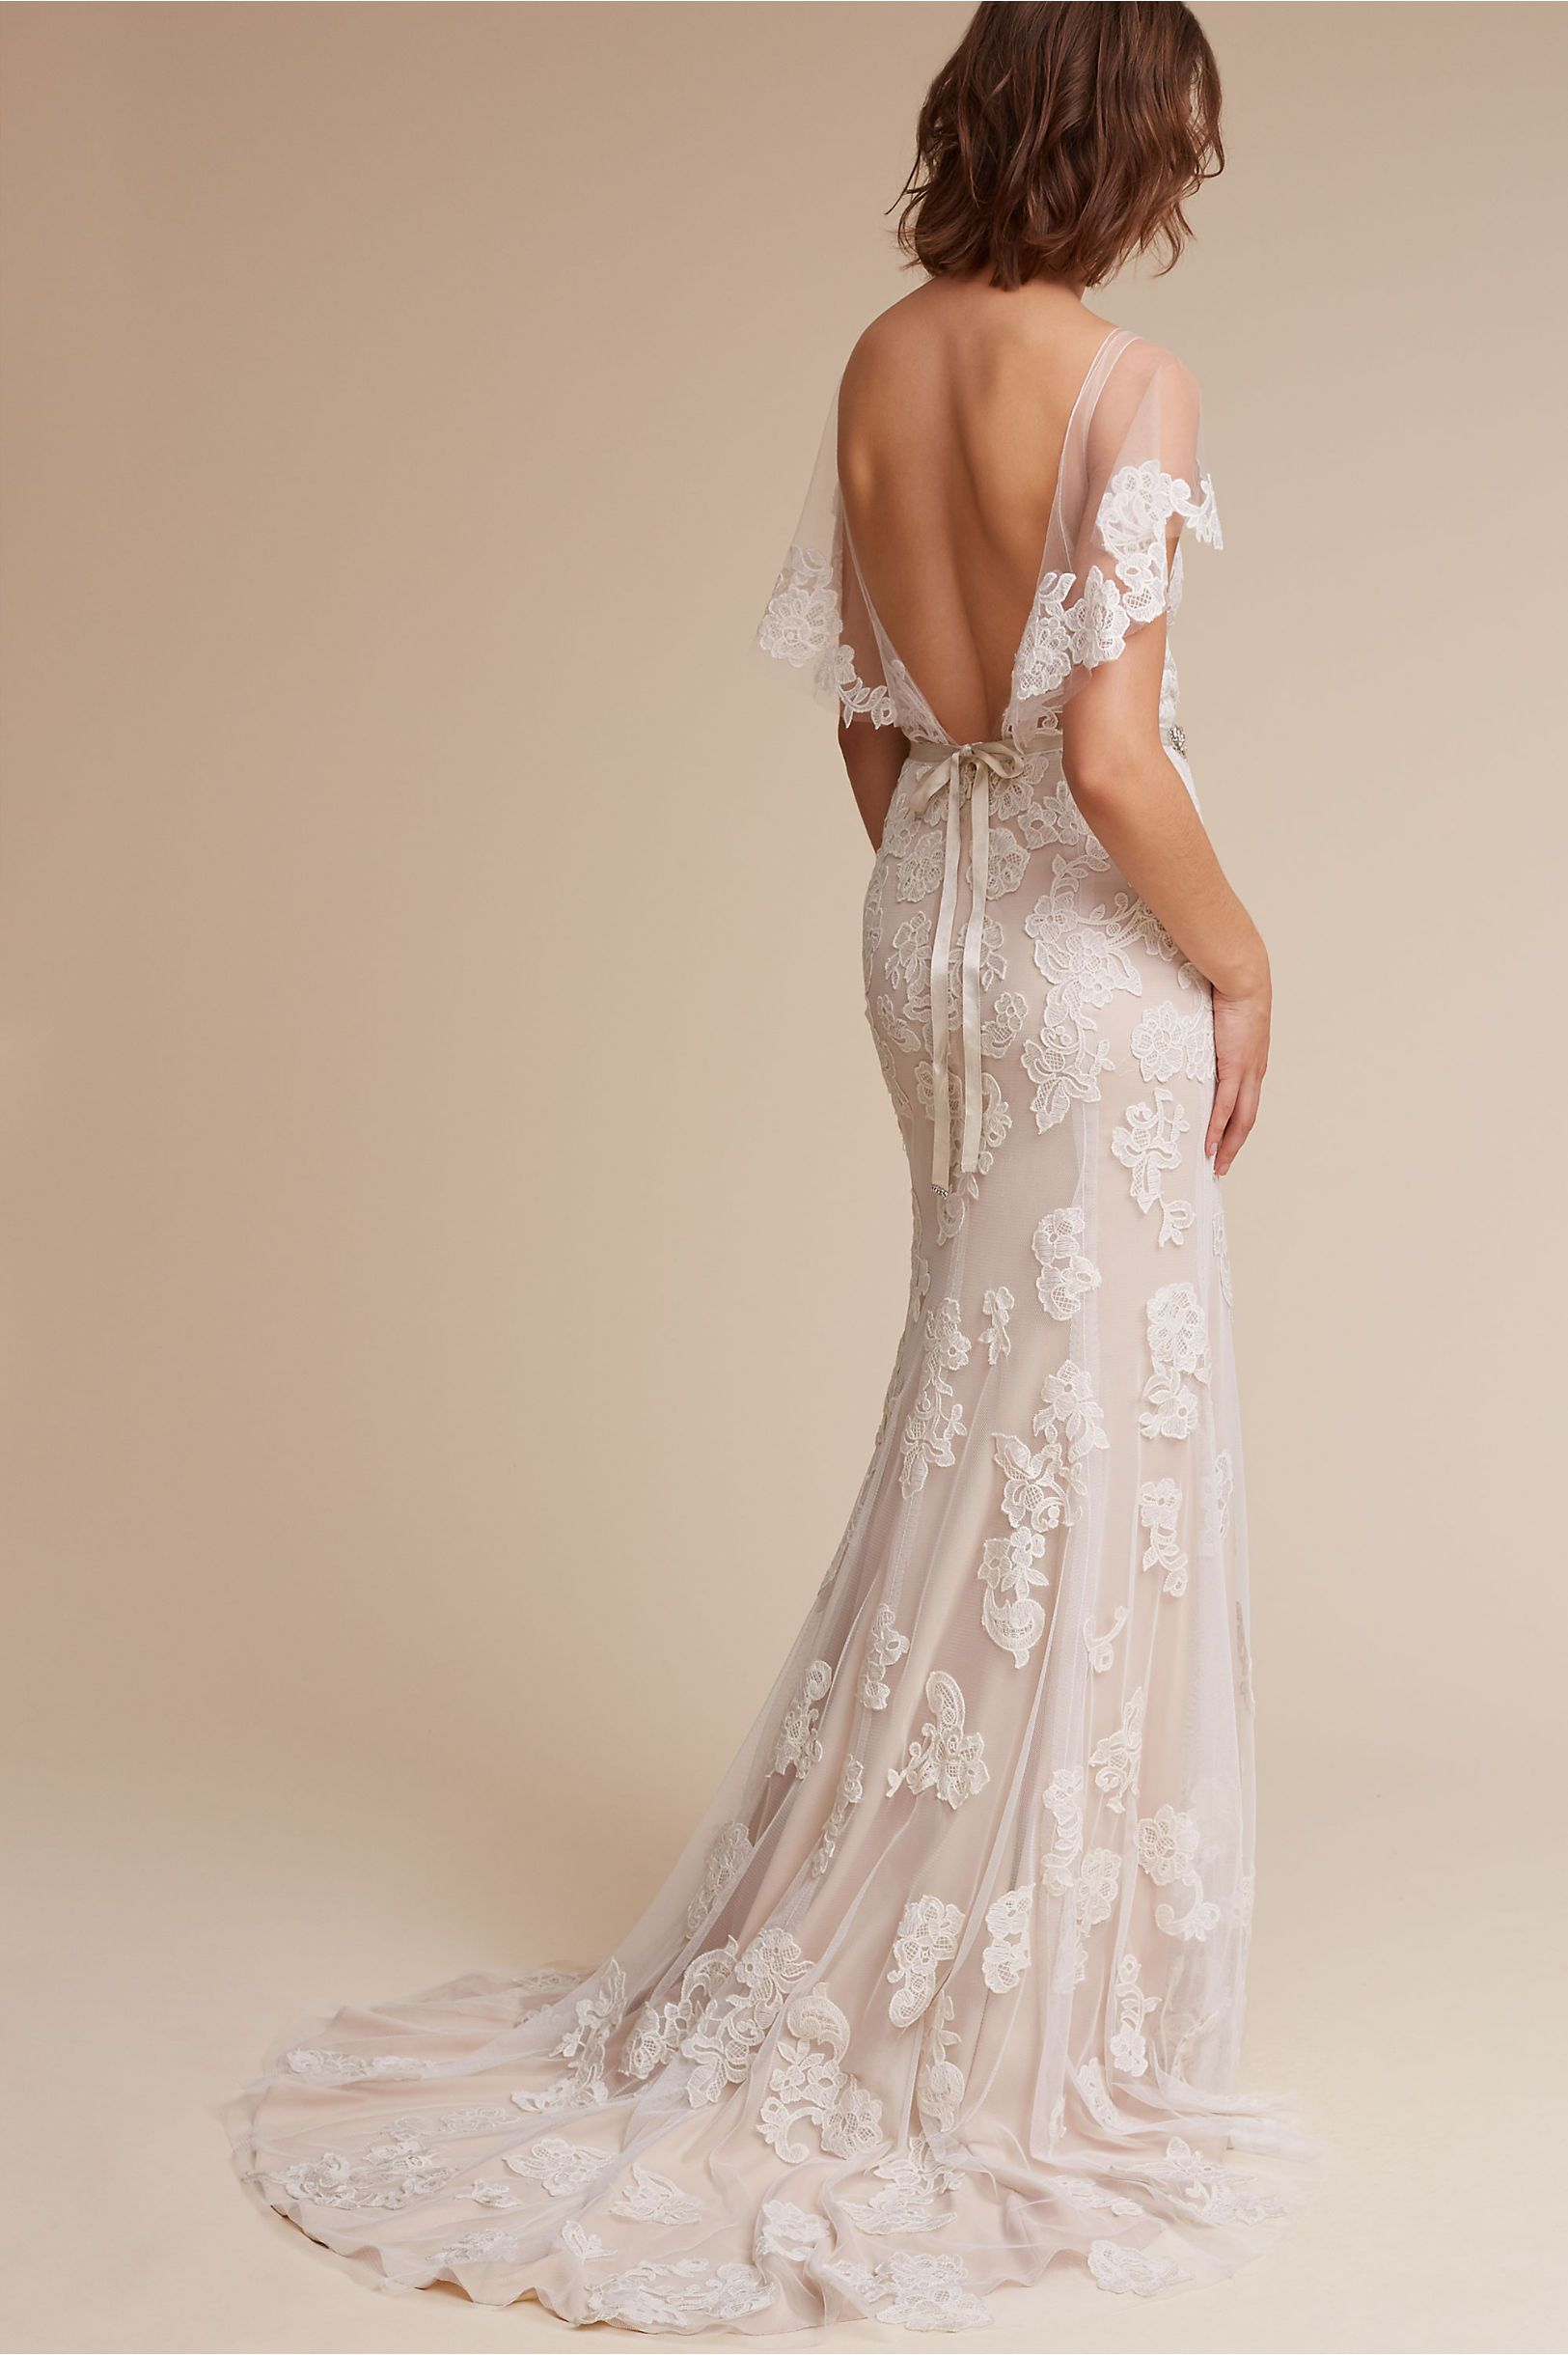 Sierra\' Wedding Dress | Bridal gowns, Bodice and Gowns